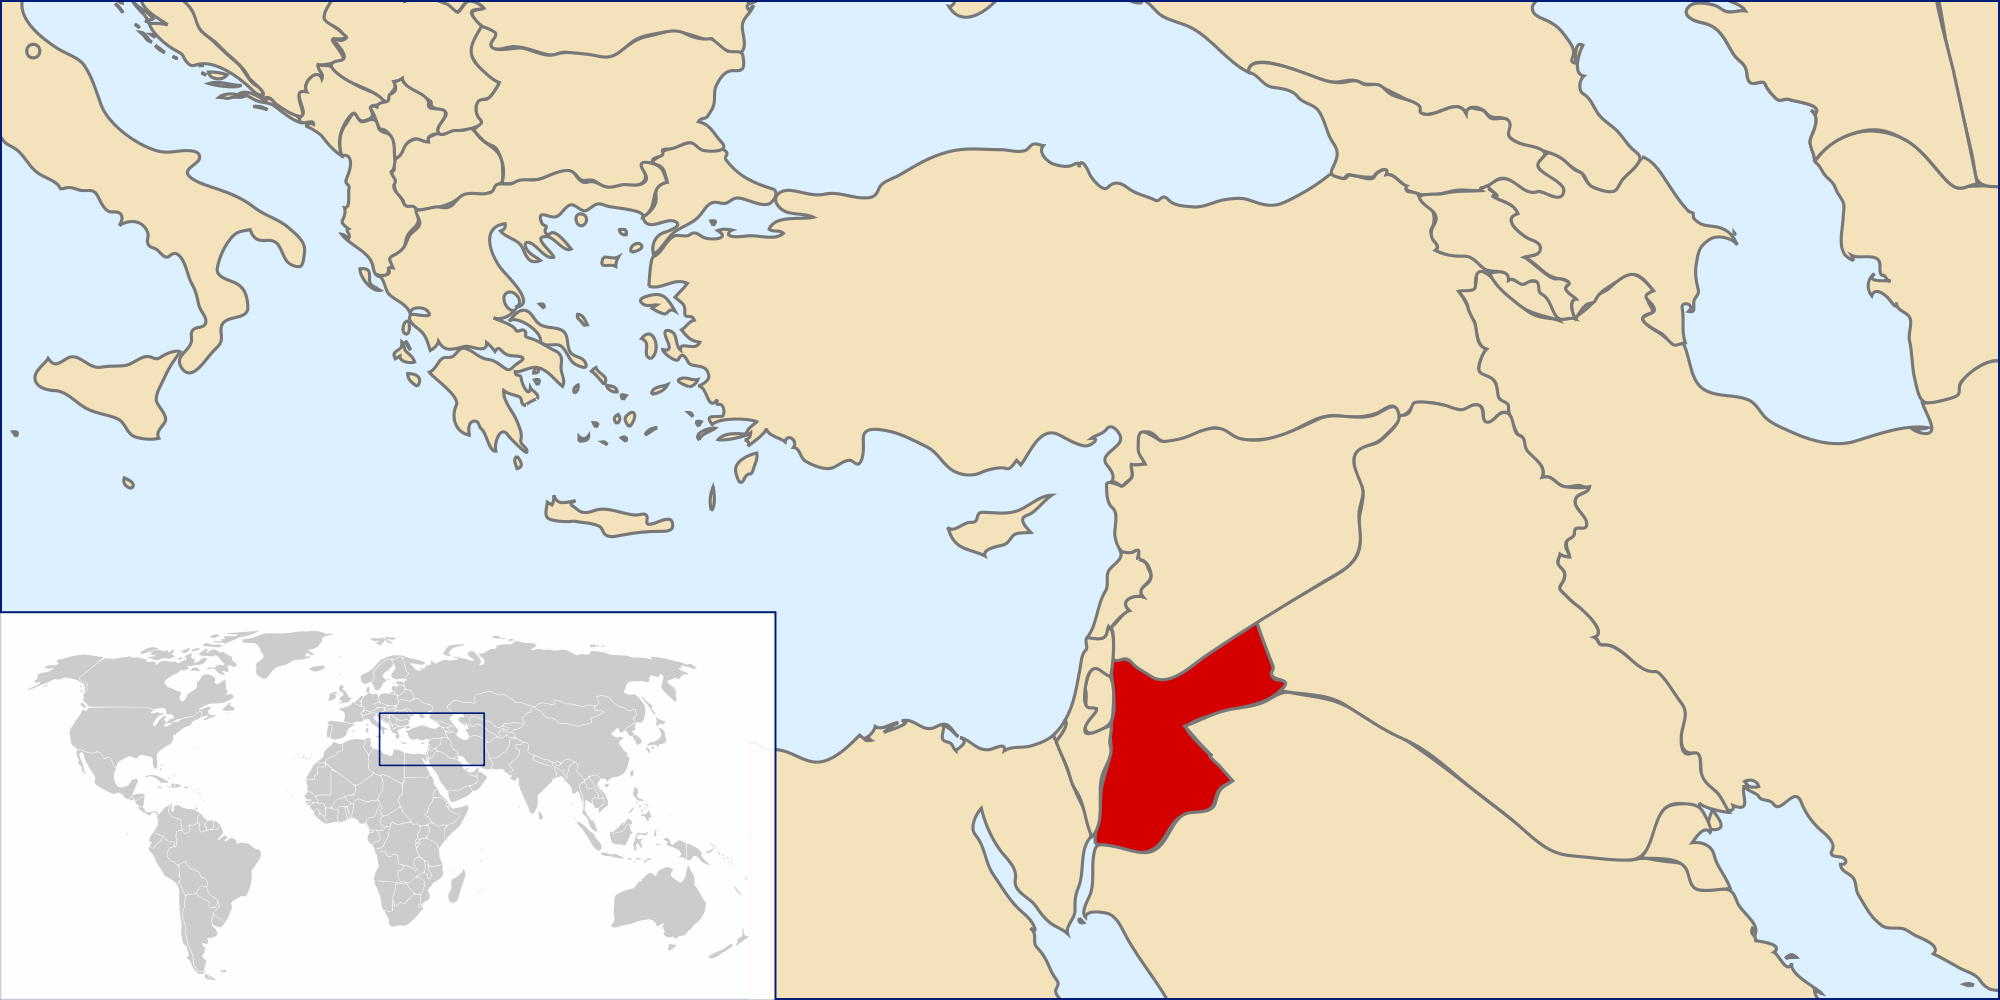 Location of the Jordan in the World Map